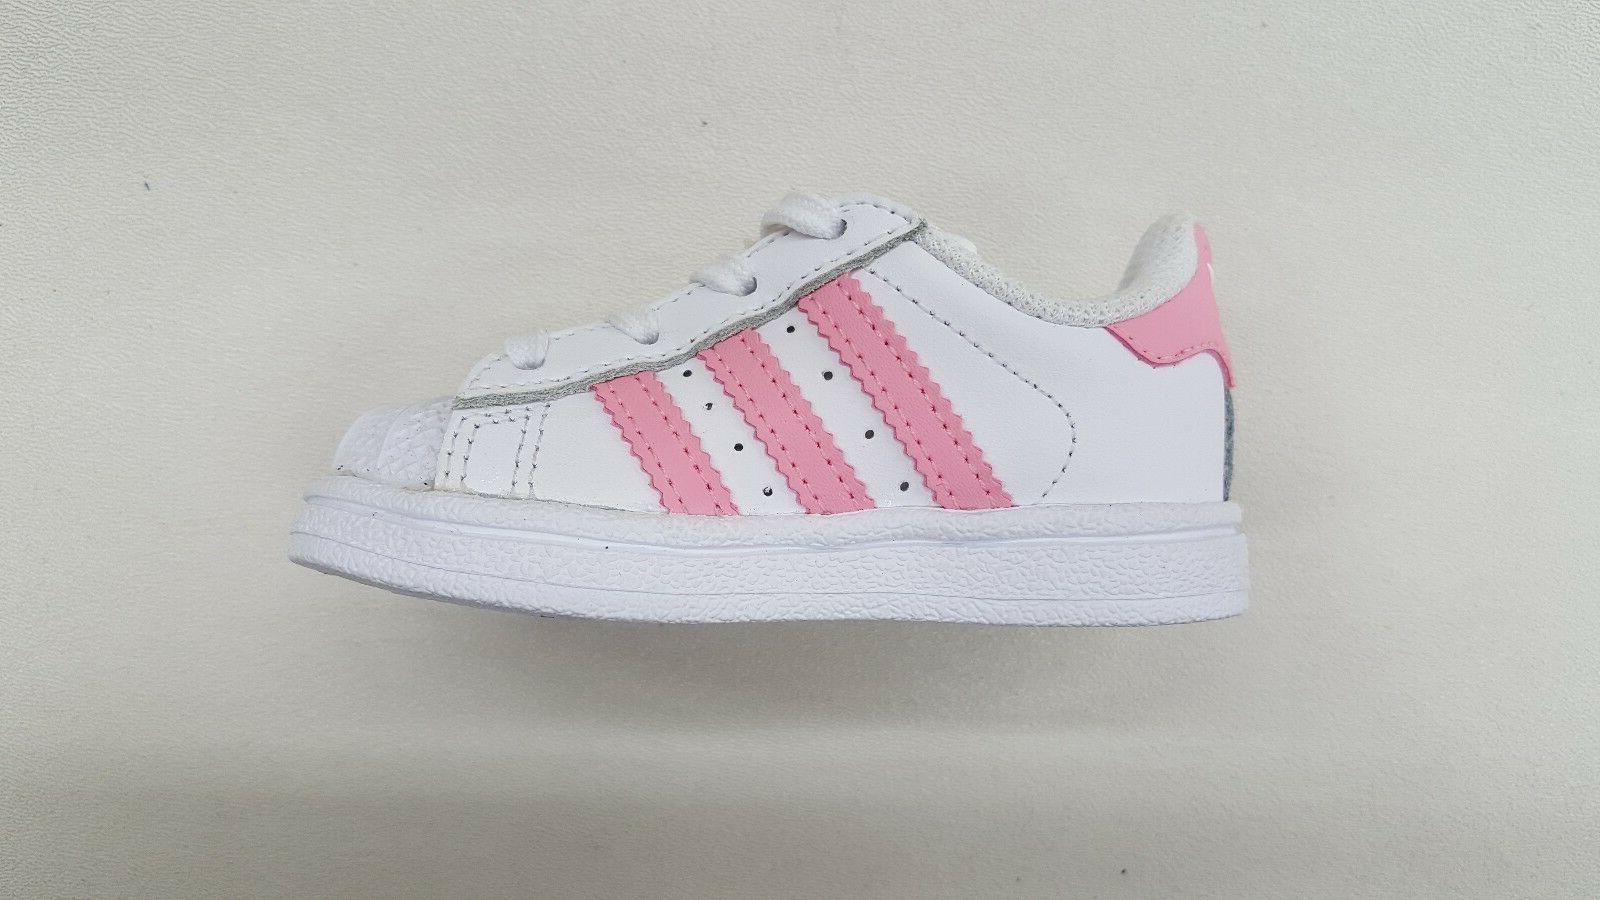 ADIDAS SUPERSTAR II WHITE LIGHT BABY SNEAKERS